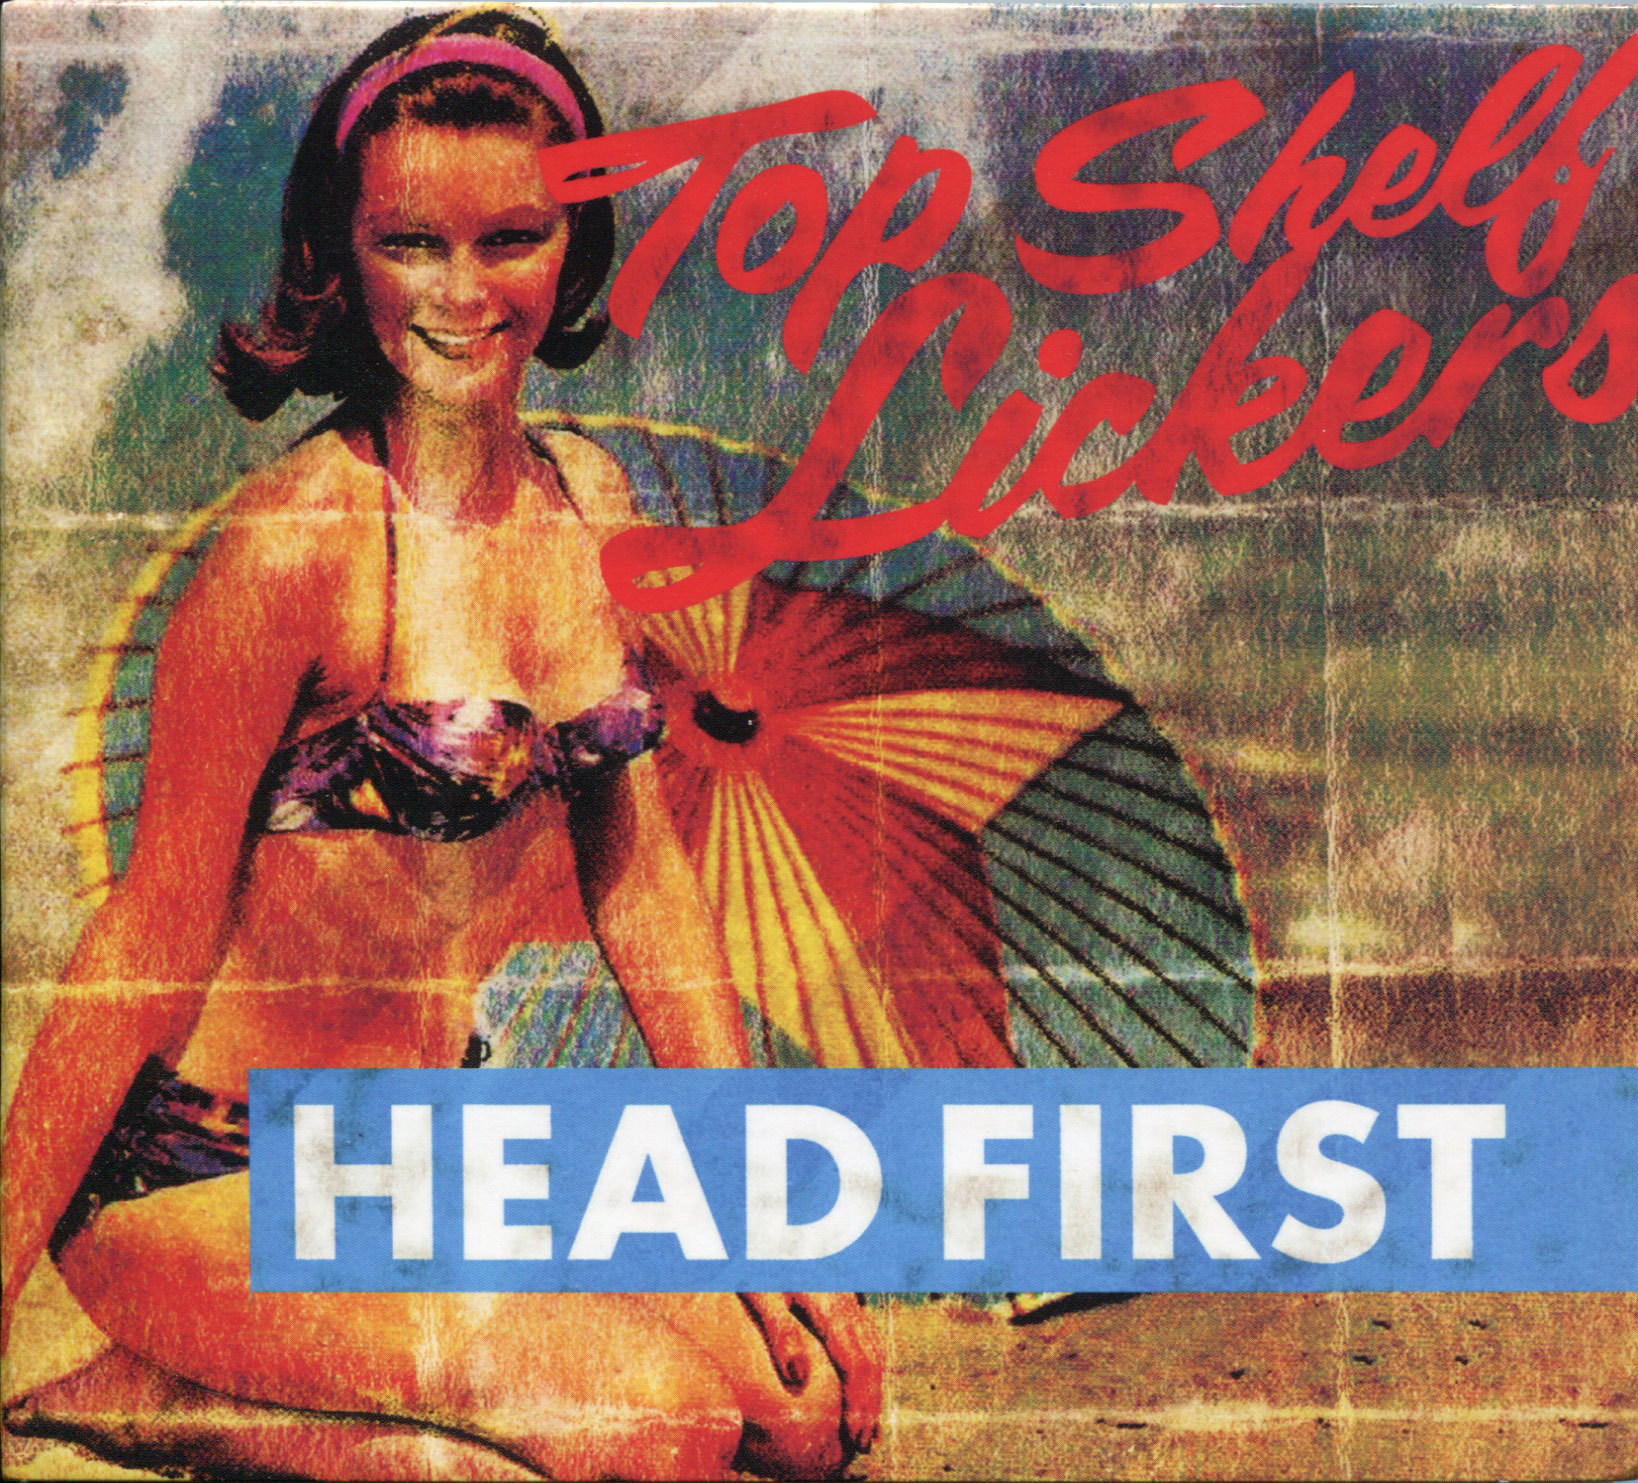 Top Shelf Lickers      Head First    Full length debut from Chicago punk rockers blending street grit with classic hooks.   Buy on Cd      Buy on iTunes